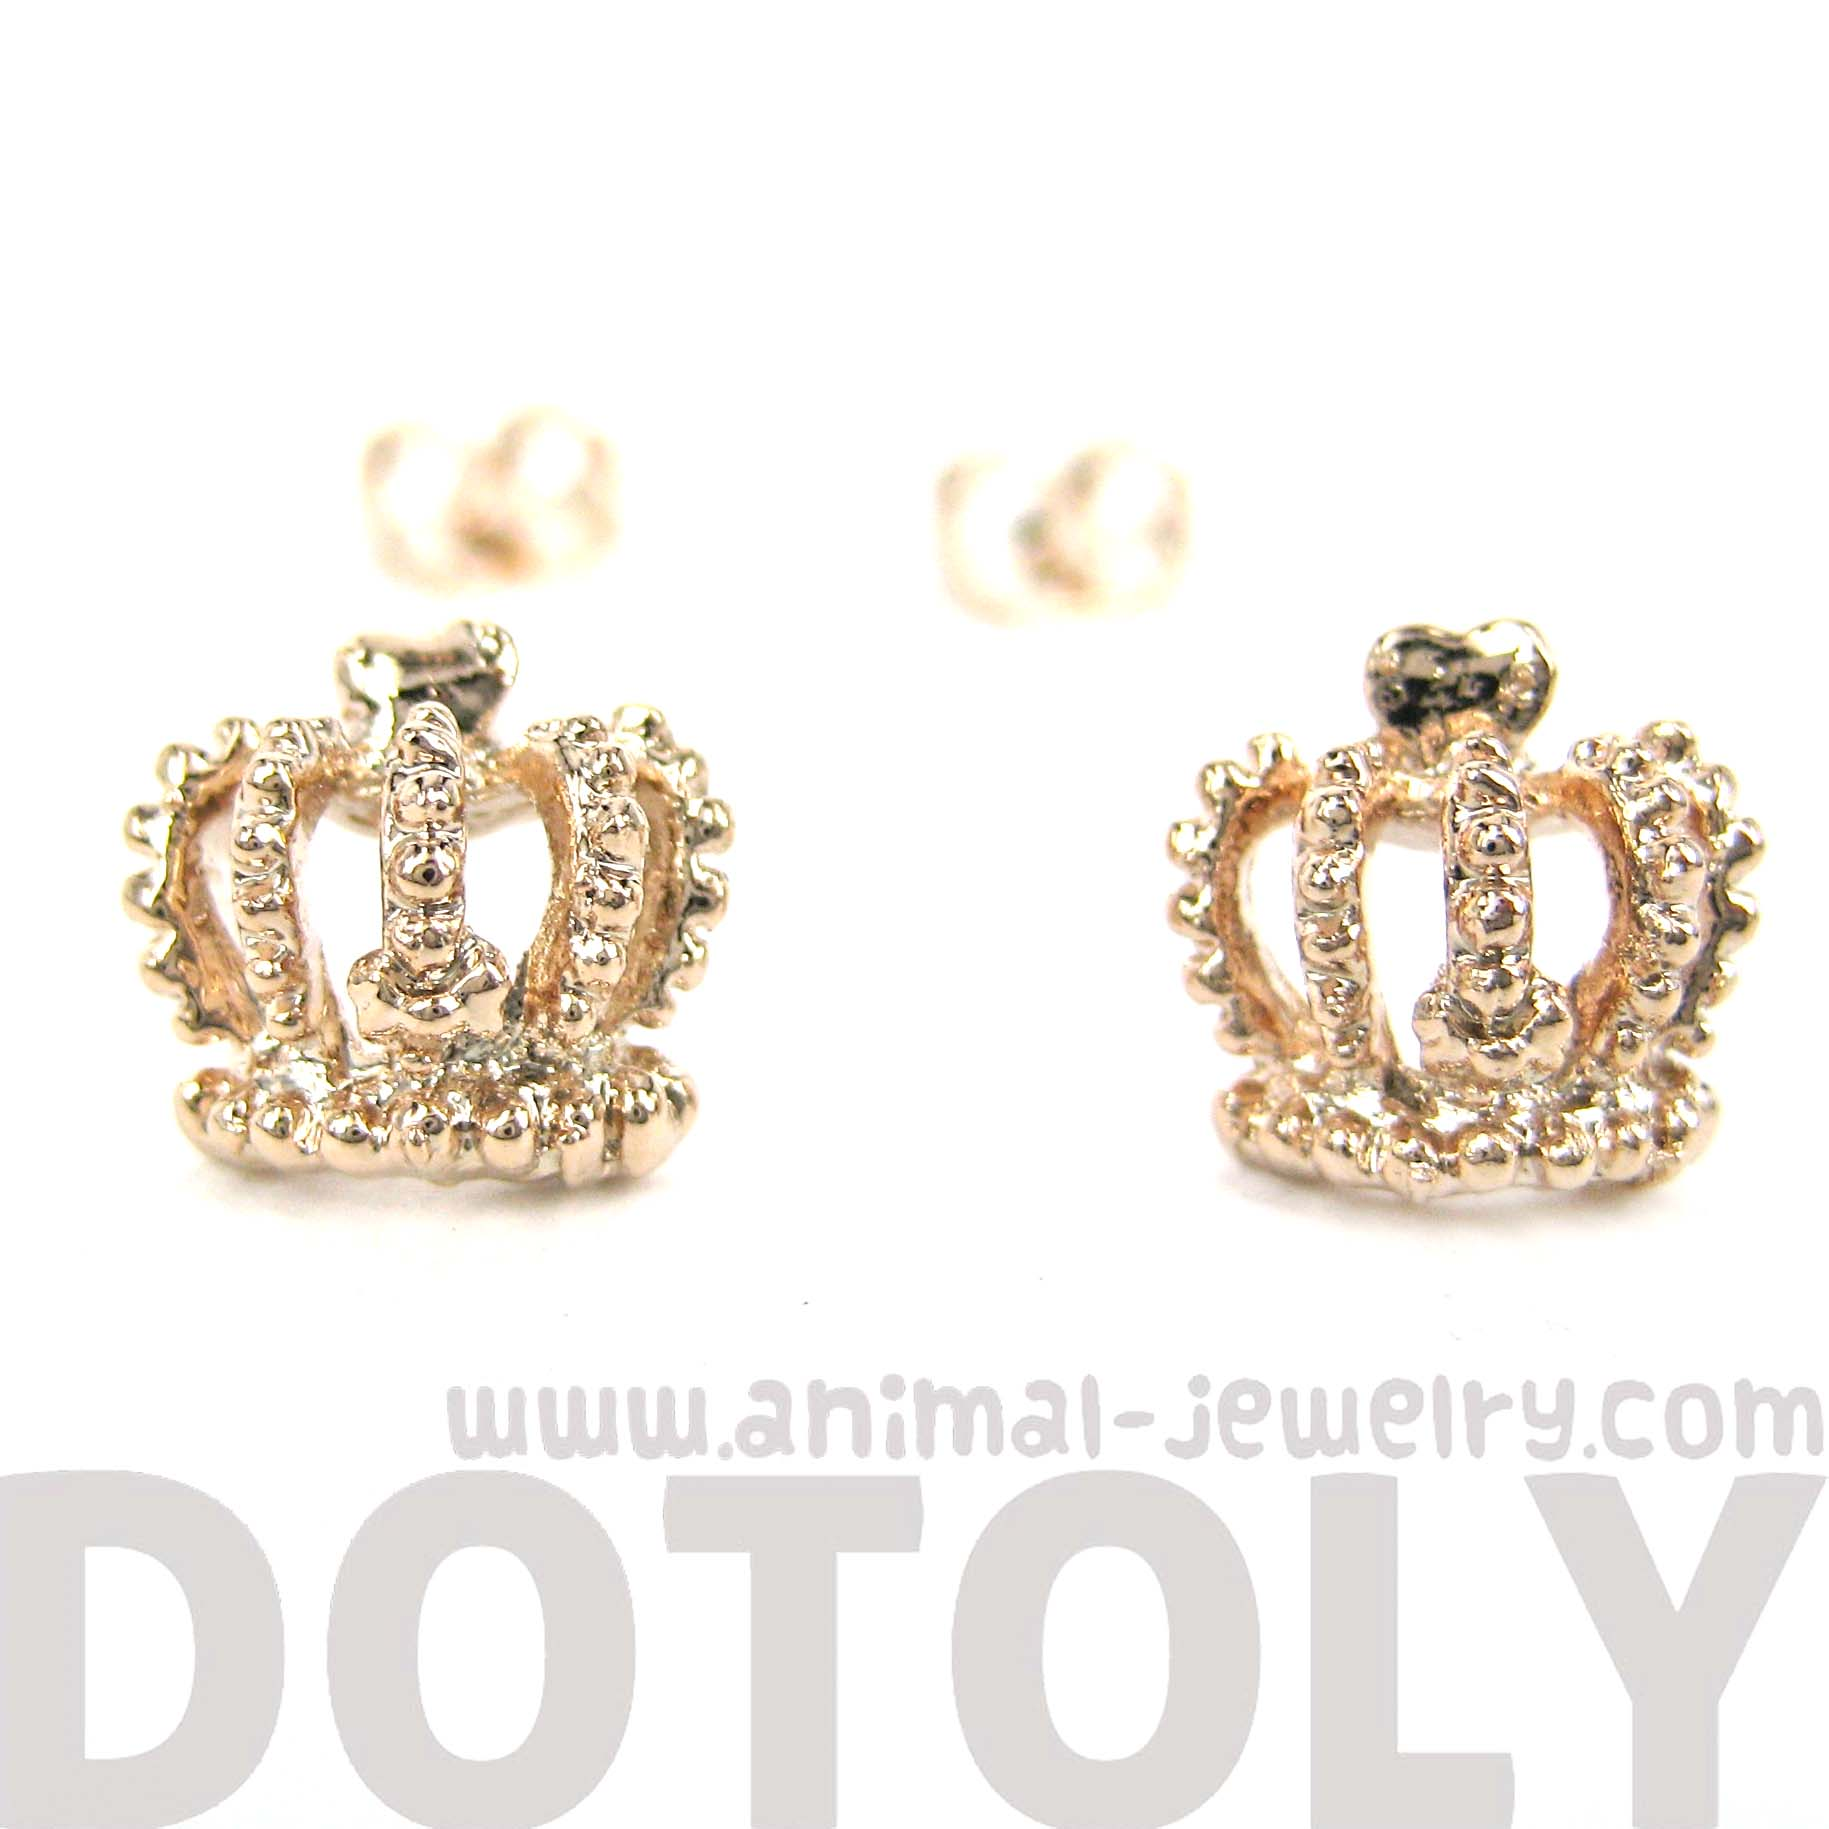 zirconia earrings crown silver image all sterling stud cubic jewellery